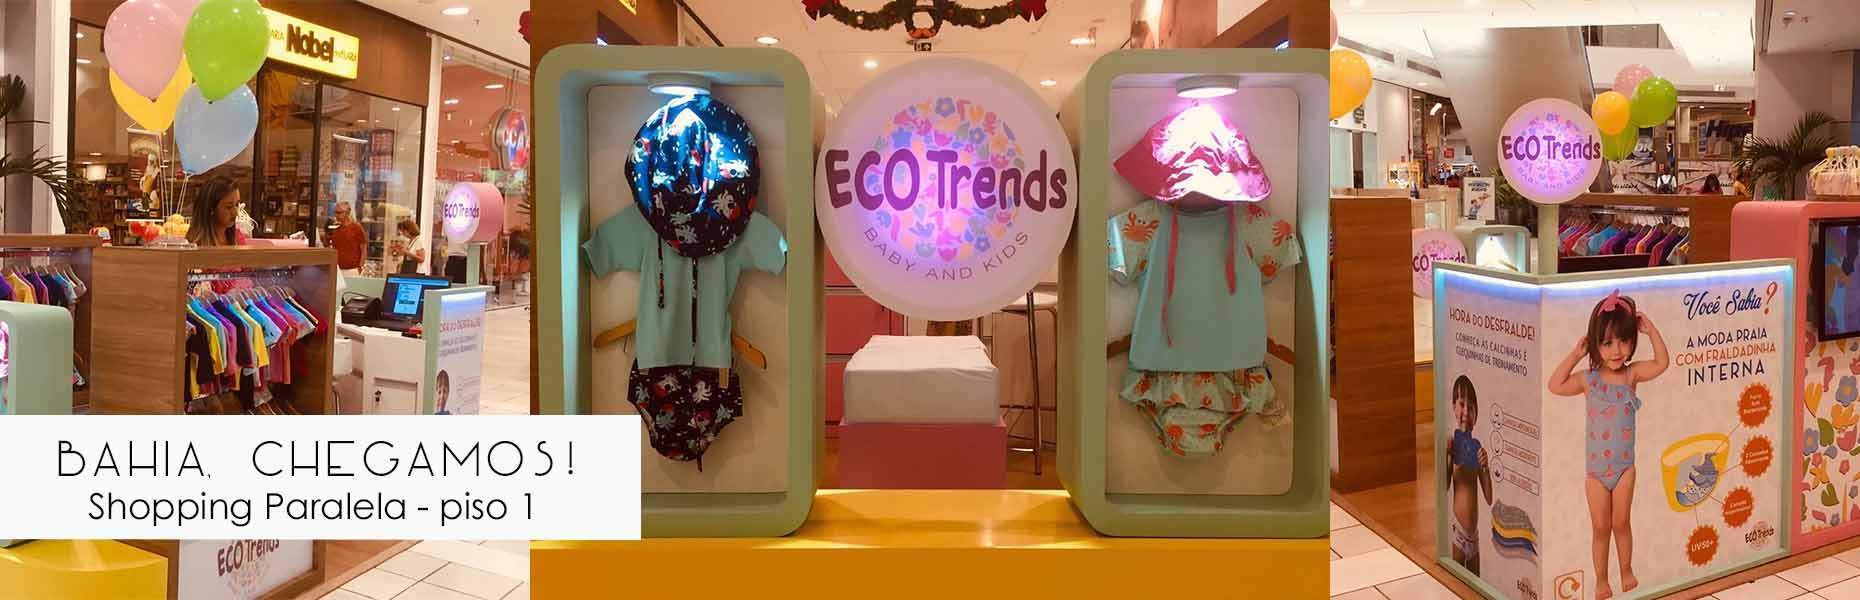 Quiosque Ecotrends